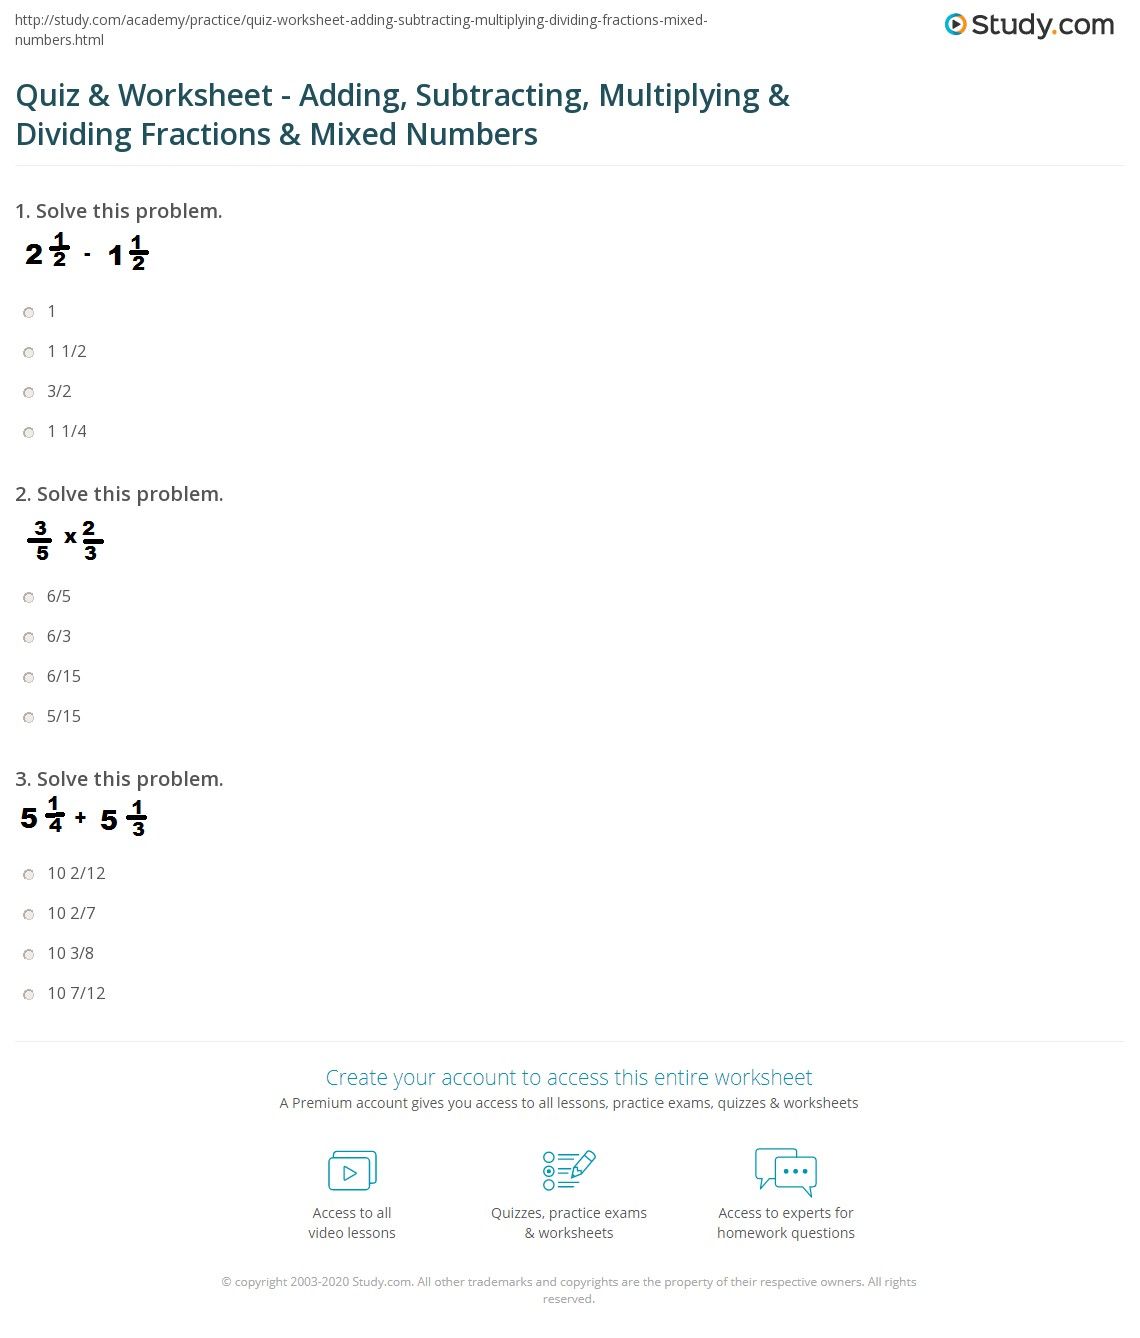 worksheet Division Of Fractions Worksheet quiz worksheet adding subtracting multiplying dividing print add subtract multiply divide fractions mixed numbers worksheet